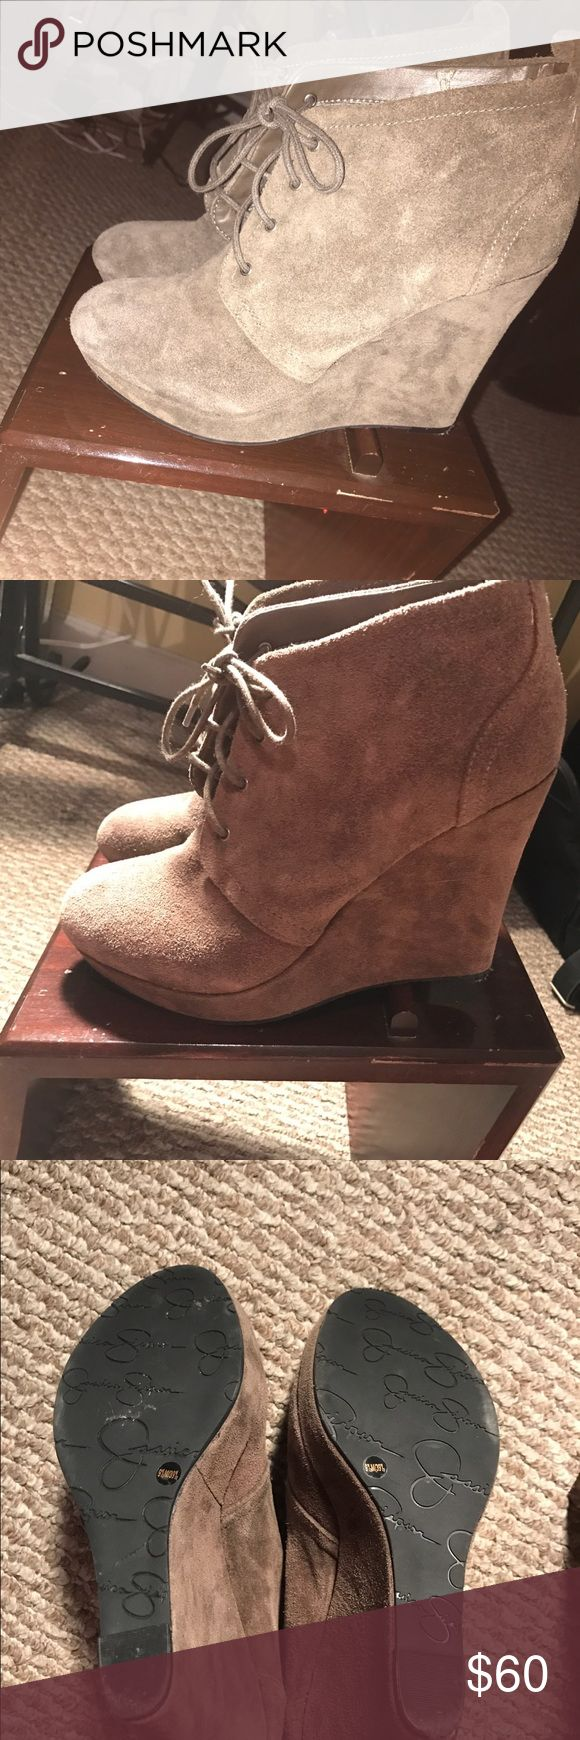 Jessica Simpson Wedge Boots Size 9. Heel is about 4 1/2 inches. Worn a couple times. No trades or ppal. No flaws on shoes. bottom is a little worn from wear. Willing to negotiate Jessica Simpson Shoes Ankle Boots & Booties